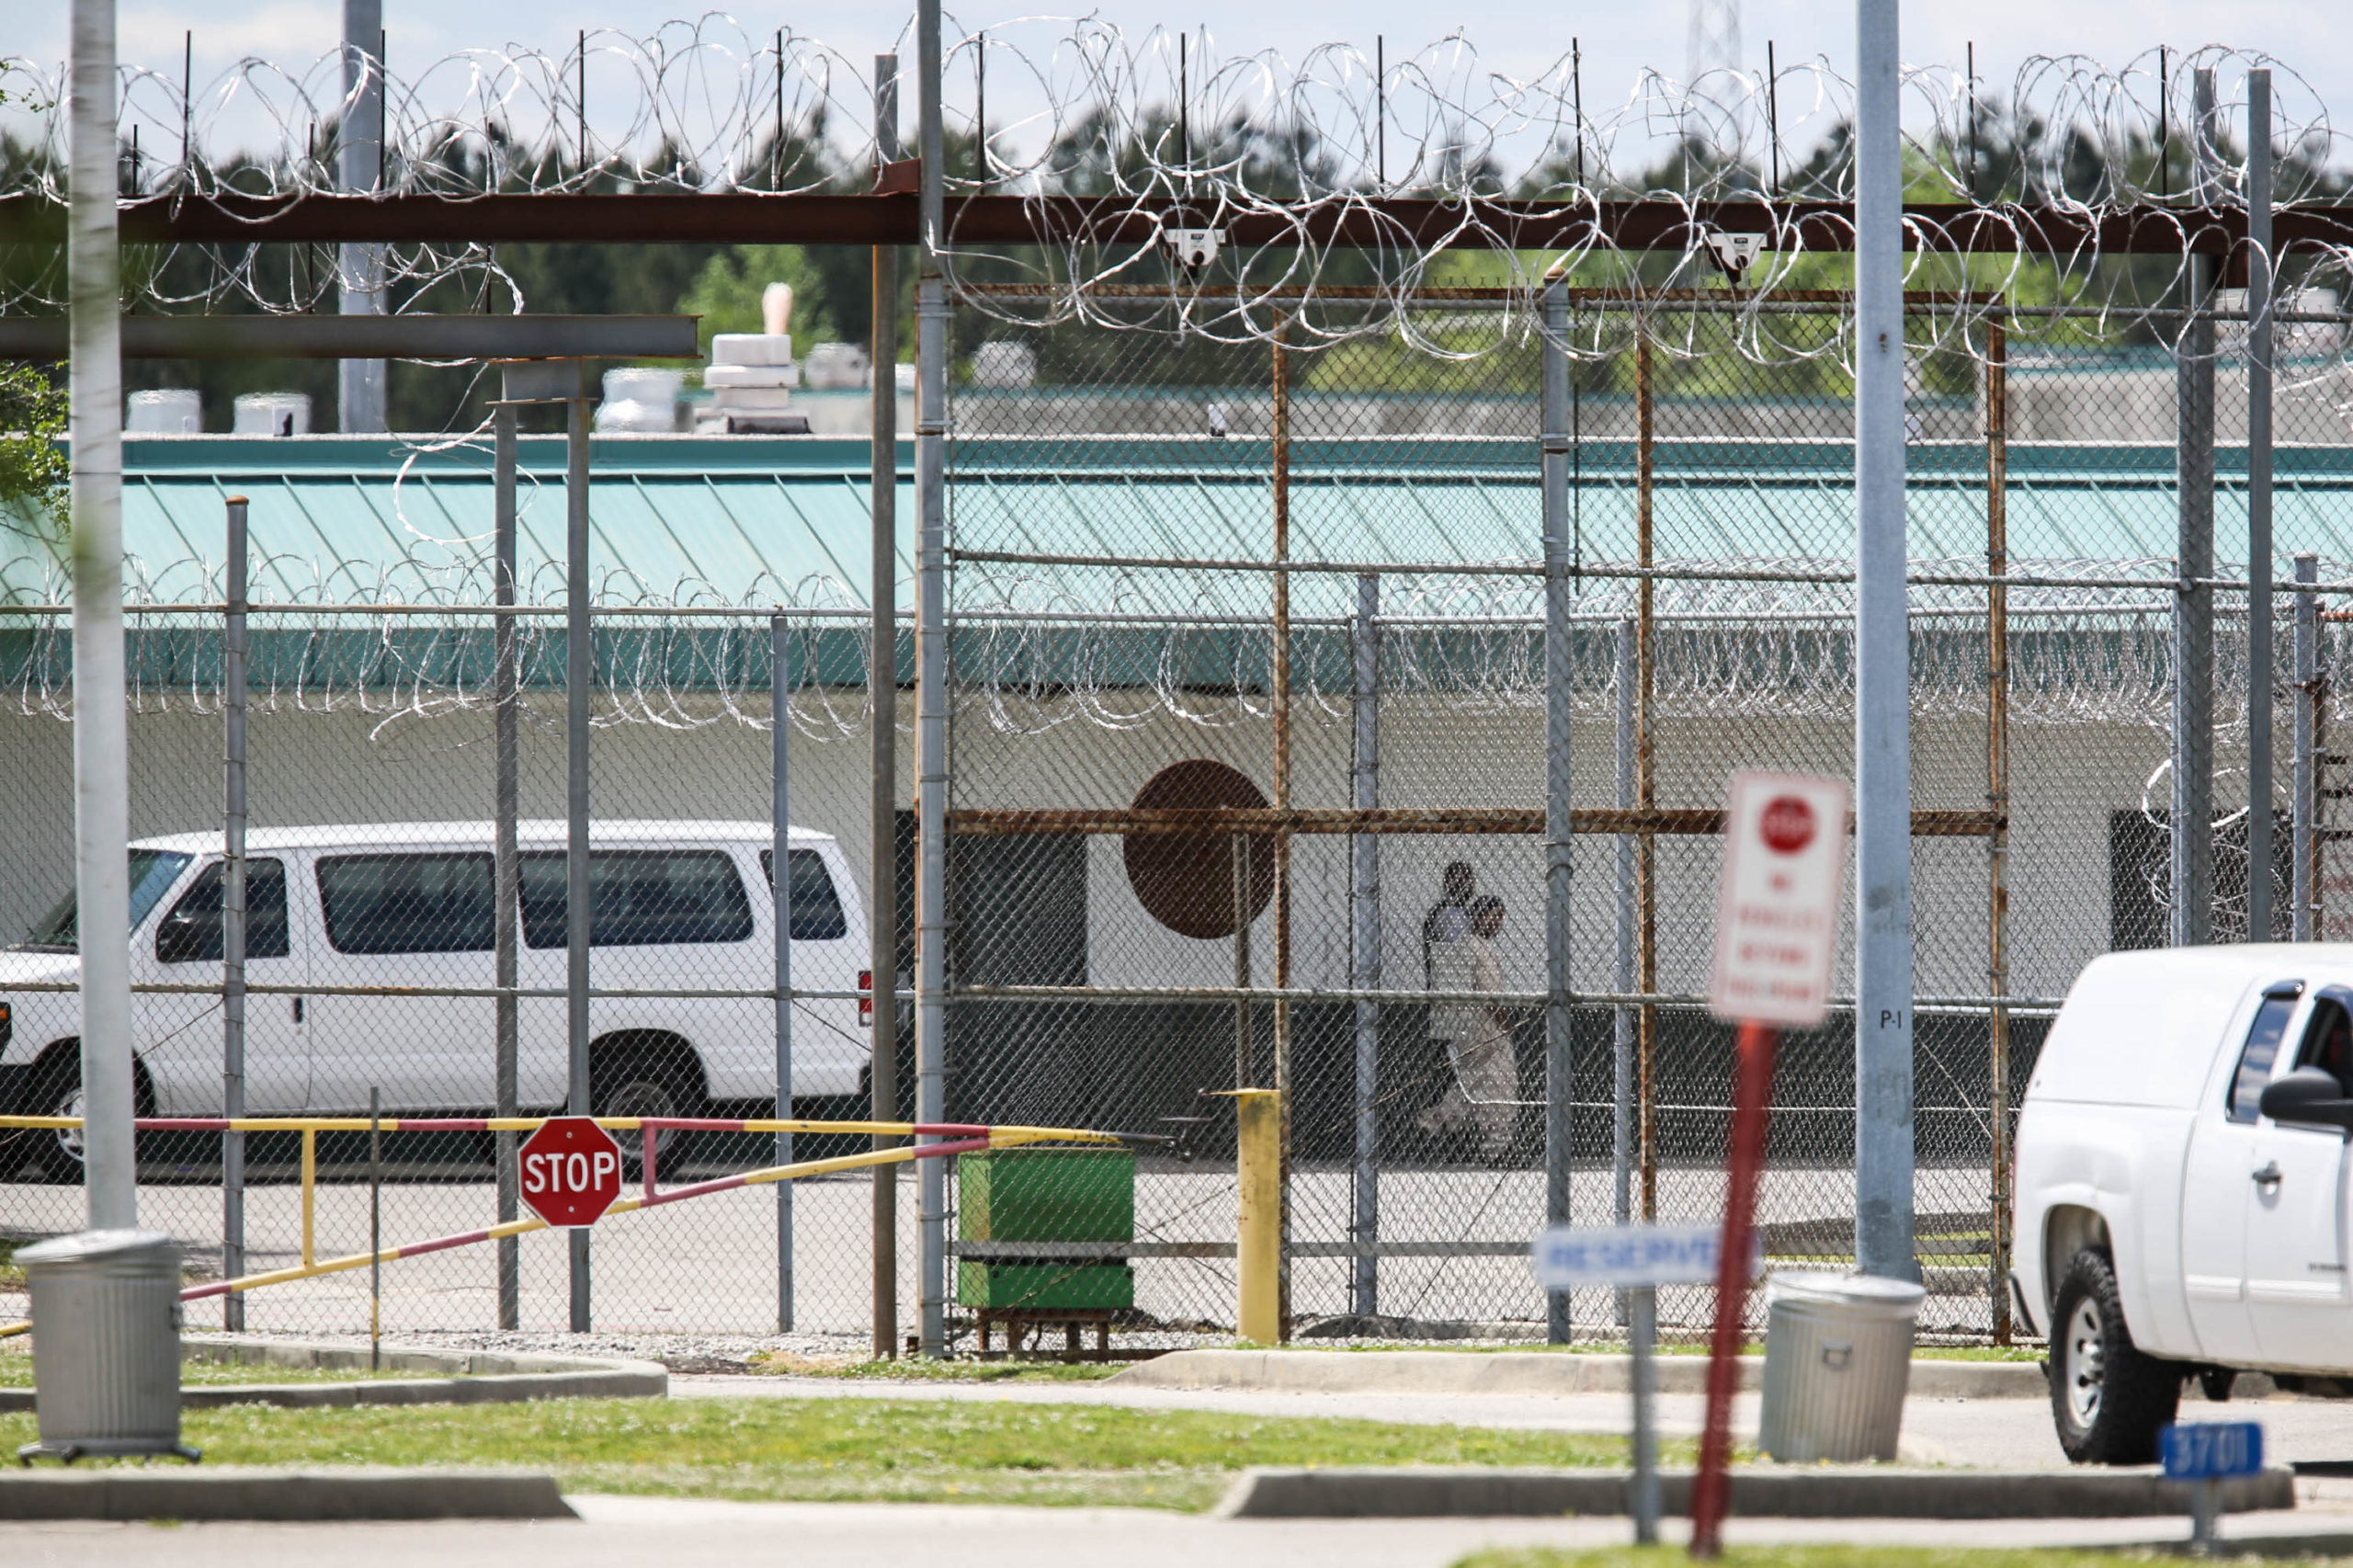 Lee Correctional Institution in Bishopville, South Carolina. LOGAN CYRUS/AFP via Getty Images